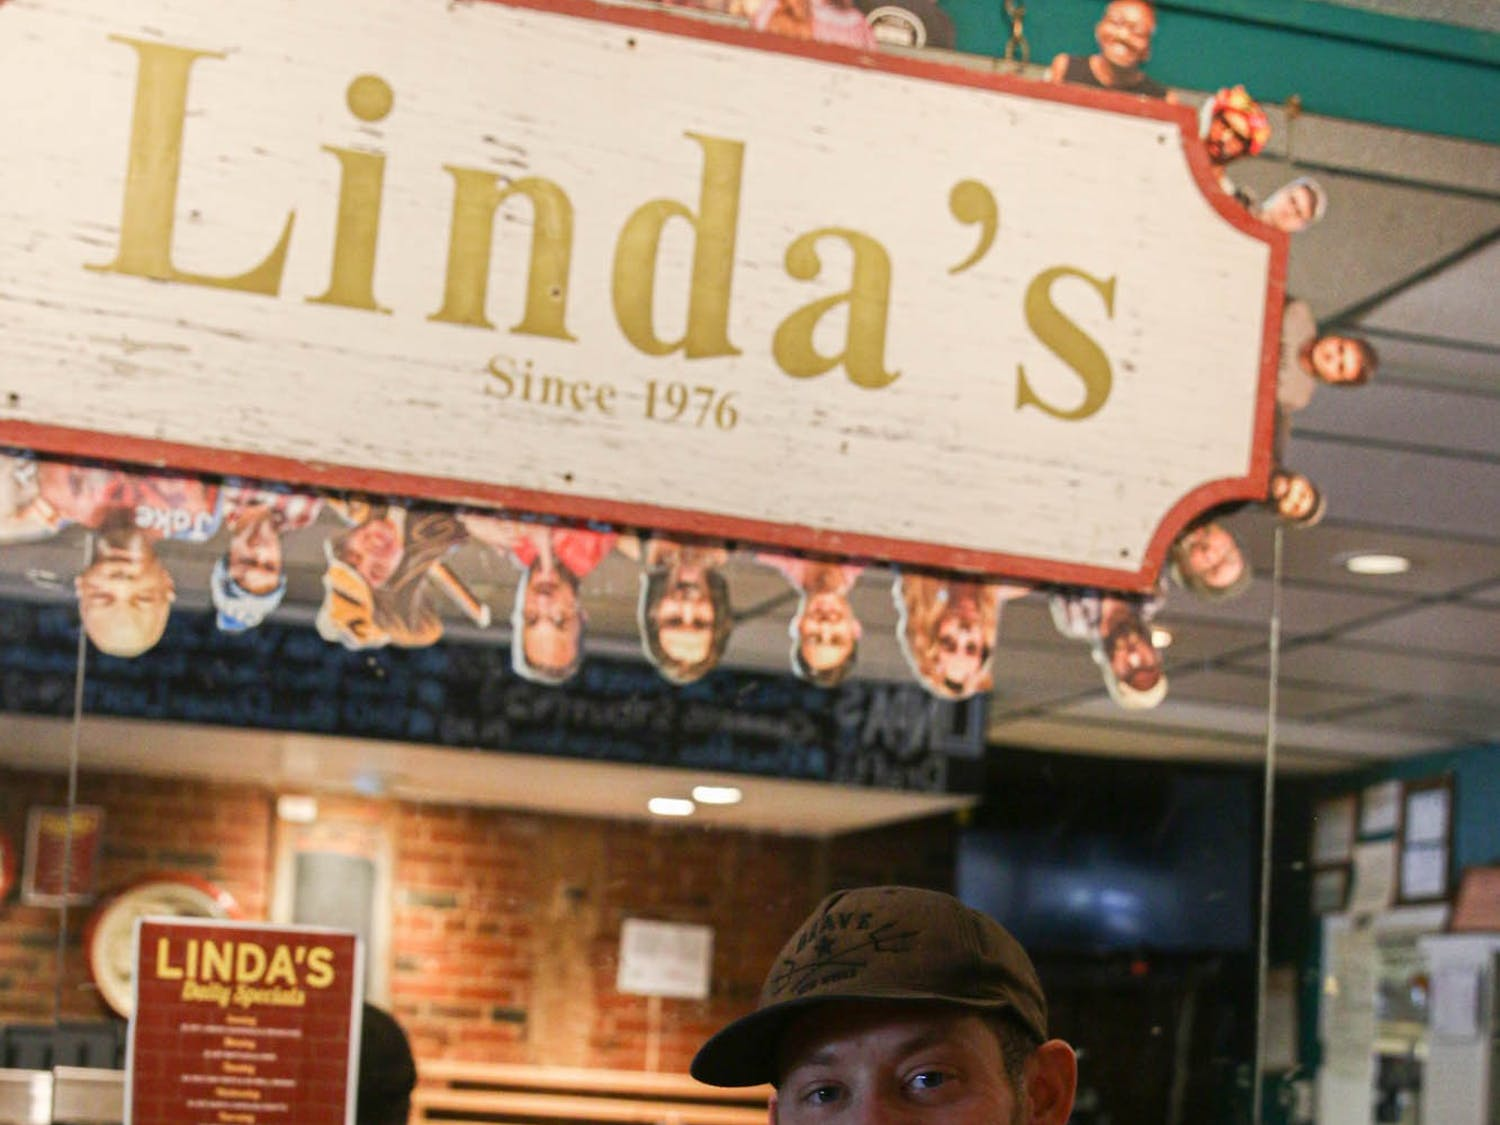 Linda's Bar and Grill owner, Christopher Carini, poses in front of his restaurant's sign on Tuesday, Sept. 29, 2020.